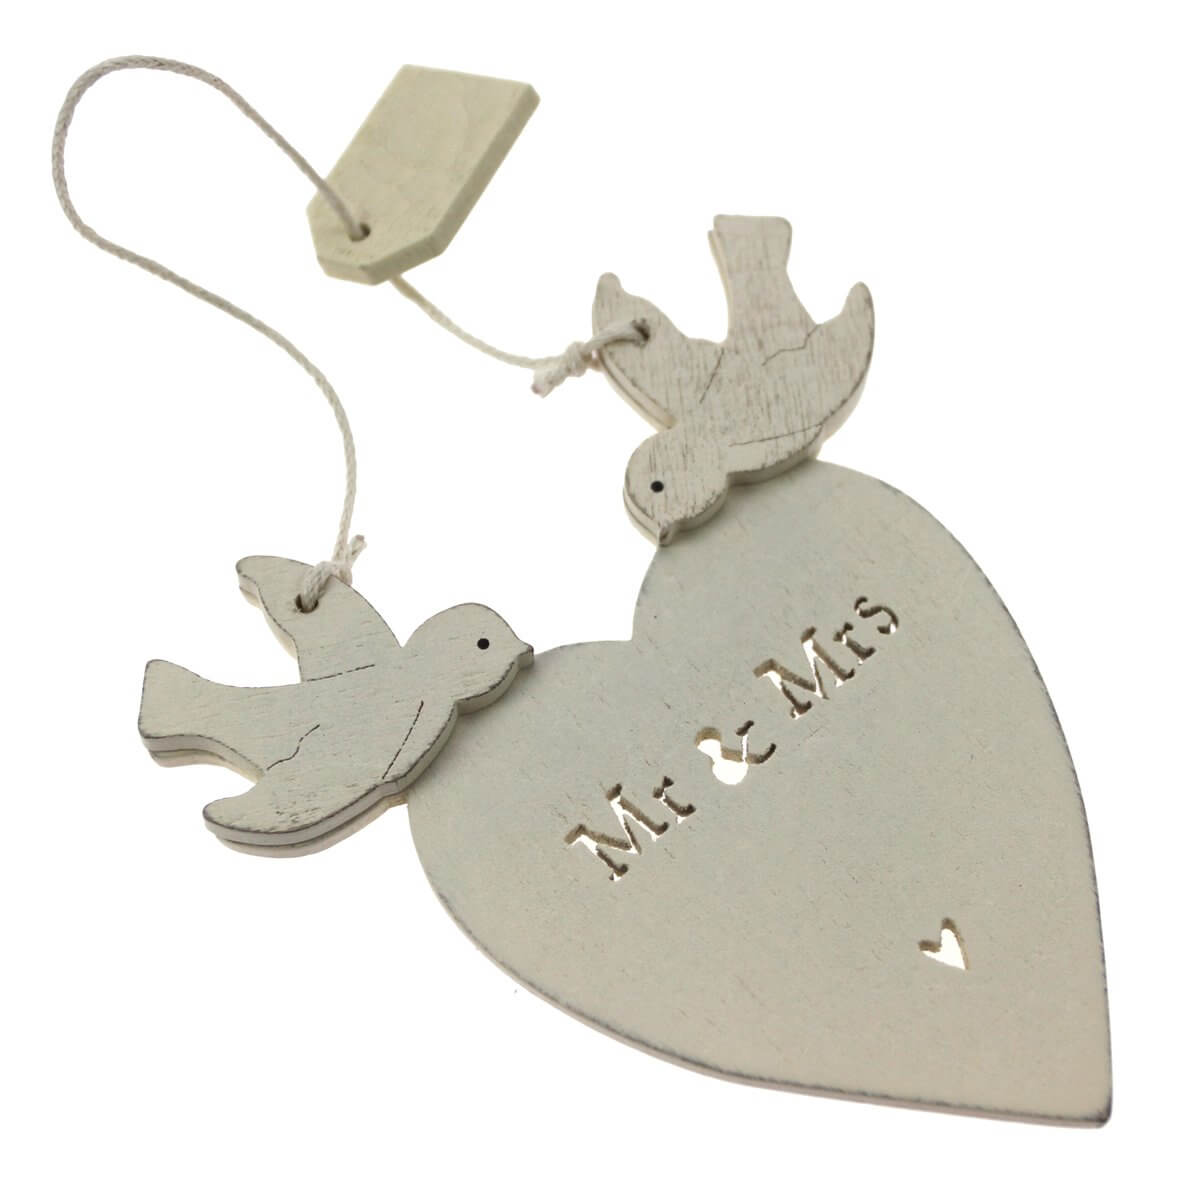 'Mr & Mrs' Heart with Doves